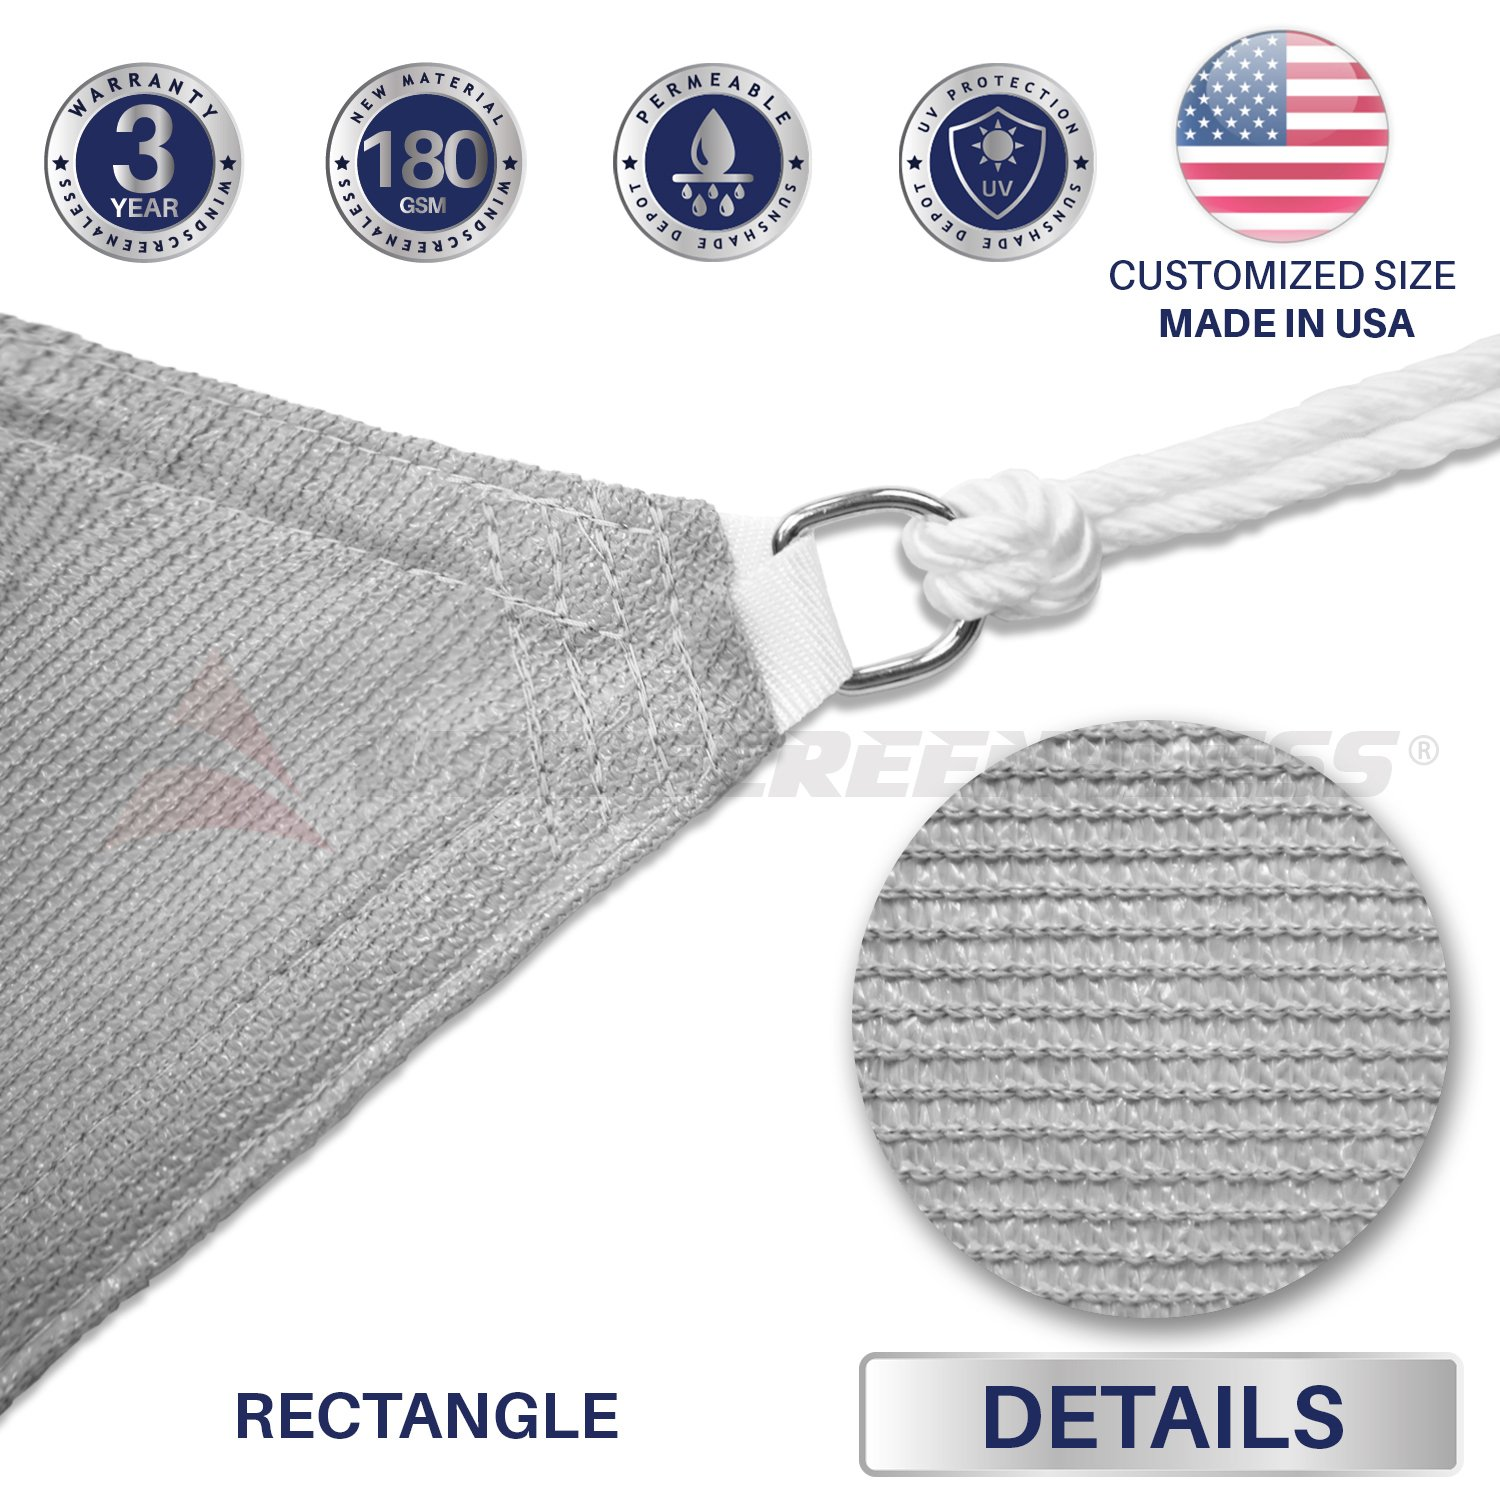 Windscreen4less 9 x 11 Sun Shade Sail UV Block Fabric Canopy in Light Grey Rectangle for Patio Garden with Free Pad Eyes Customized Size 3 Year Limited Warranty